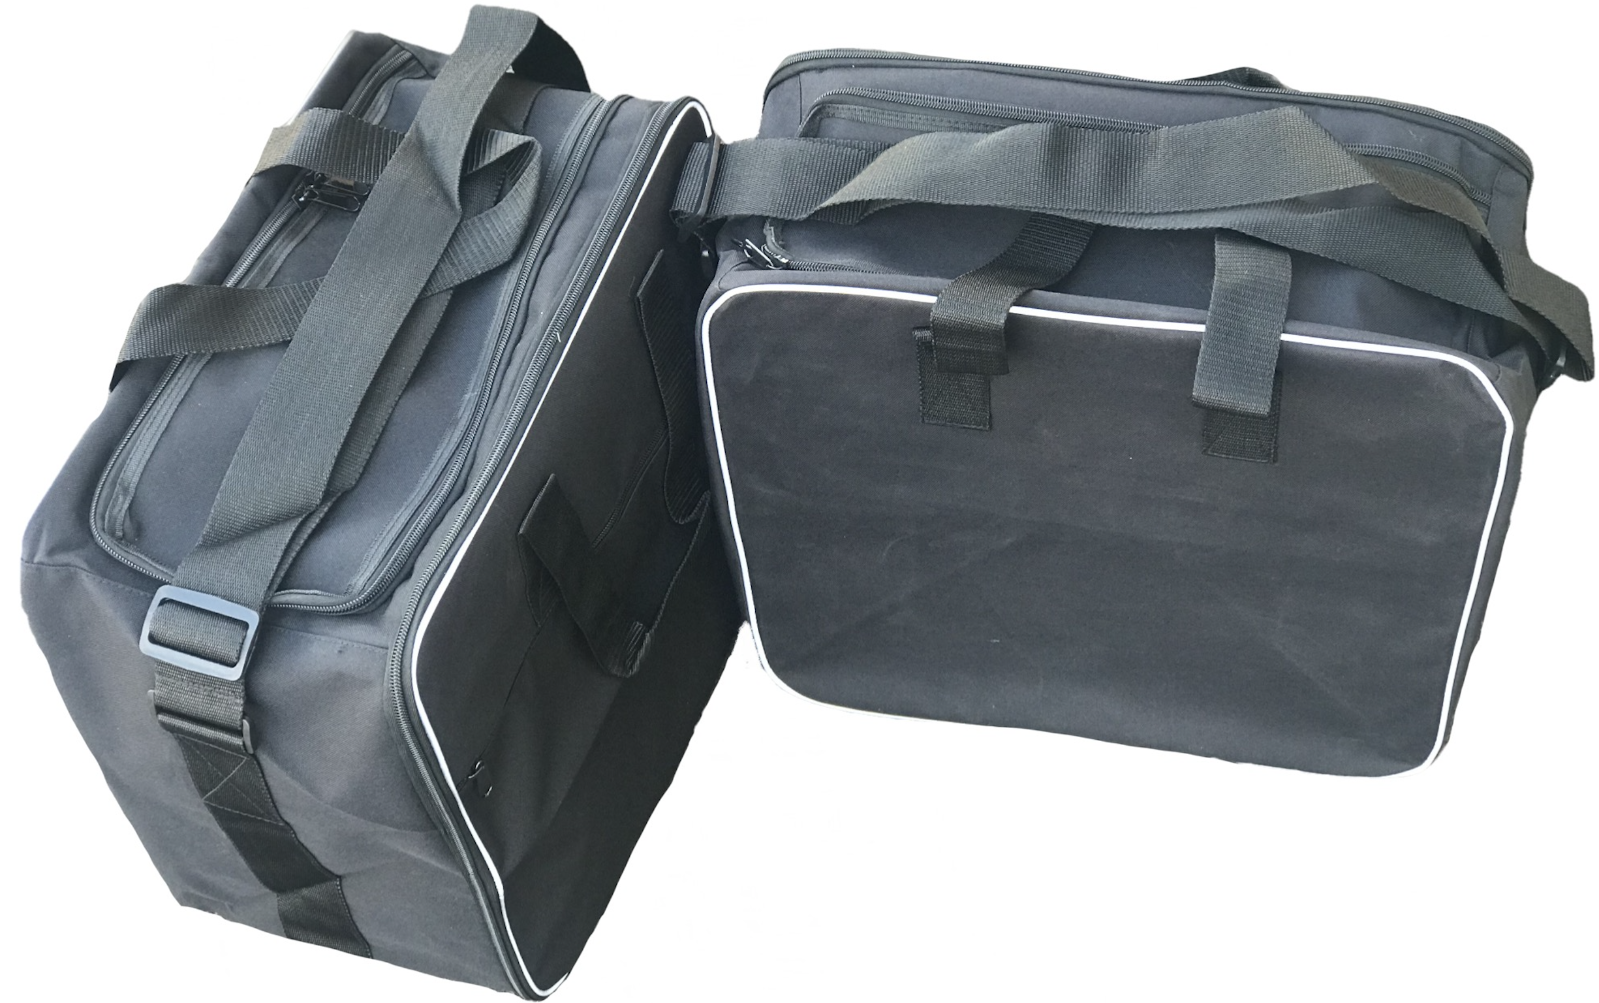 GREAT BIKERS GEAR Pannier liner bags inner bags for Moto Guzzi Norge 1200 NEW latest panniers